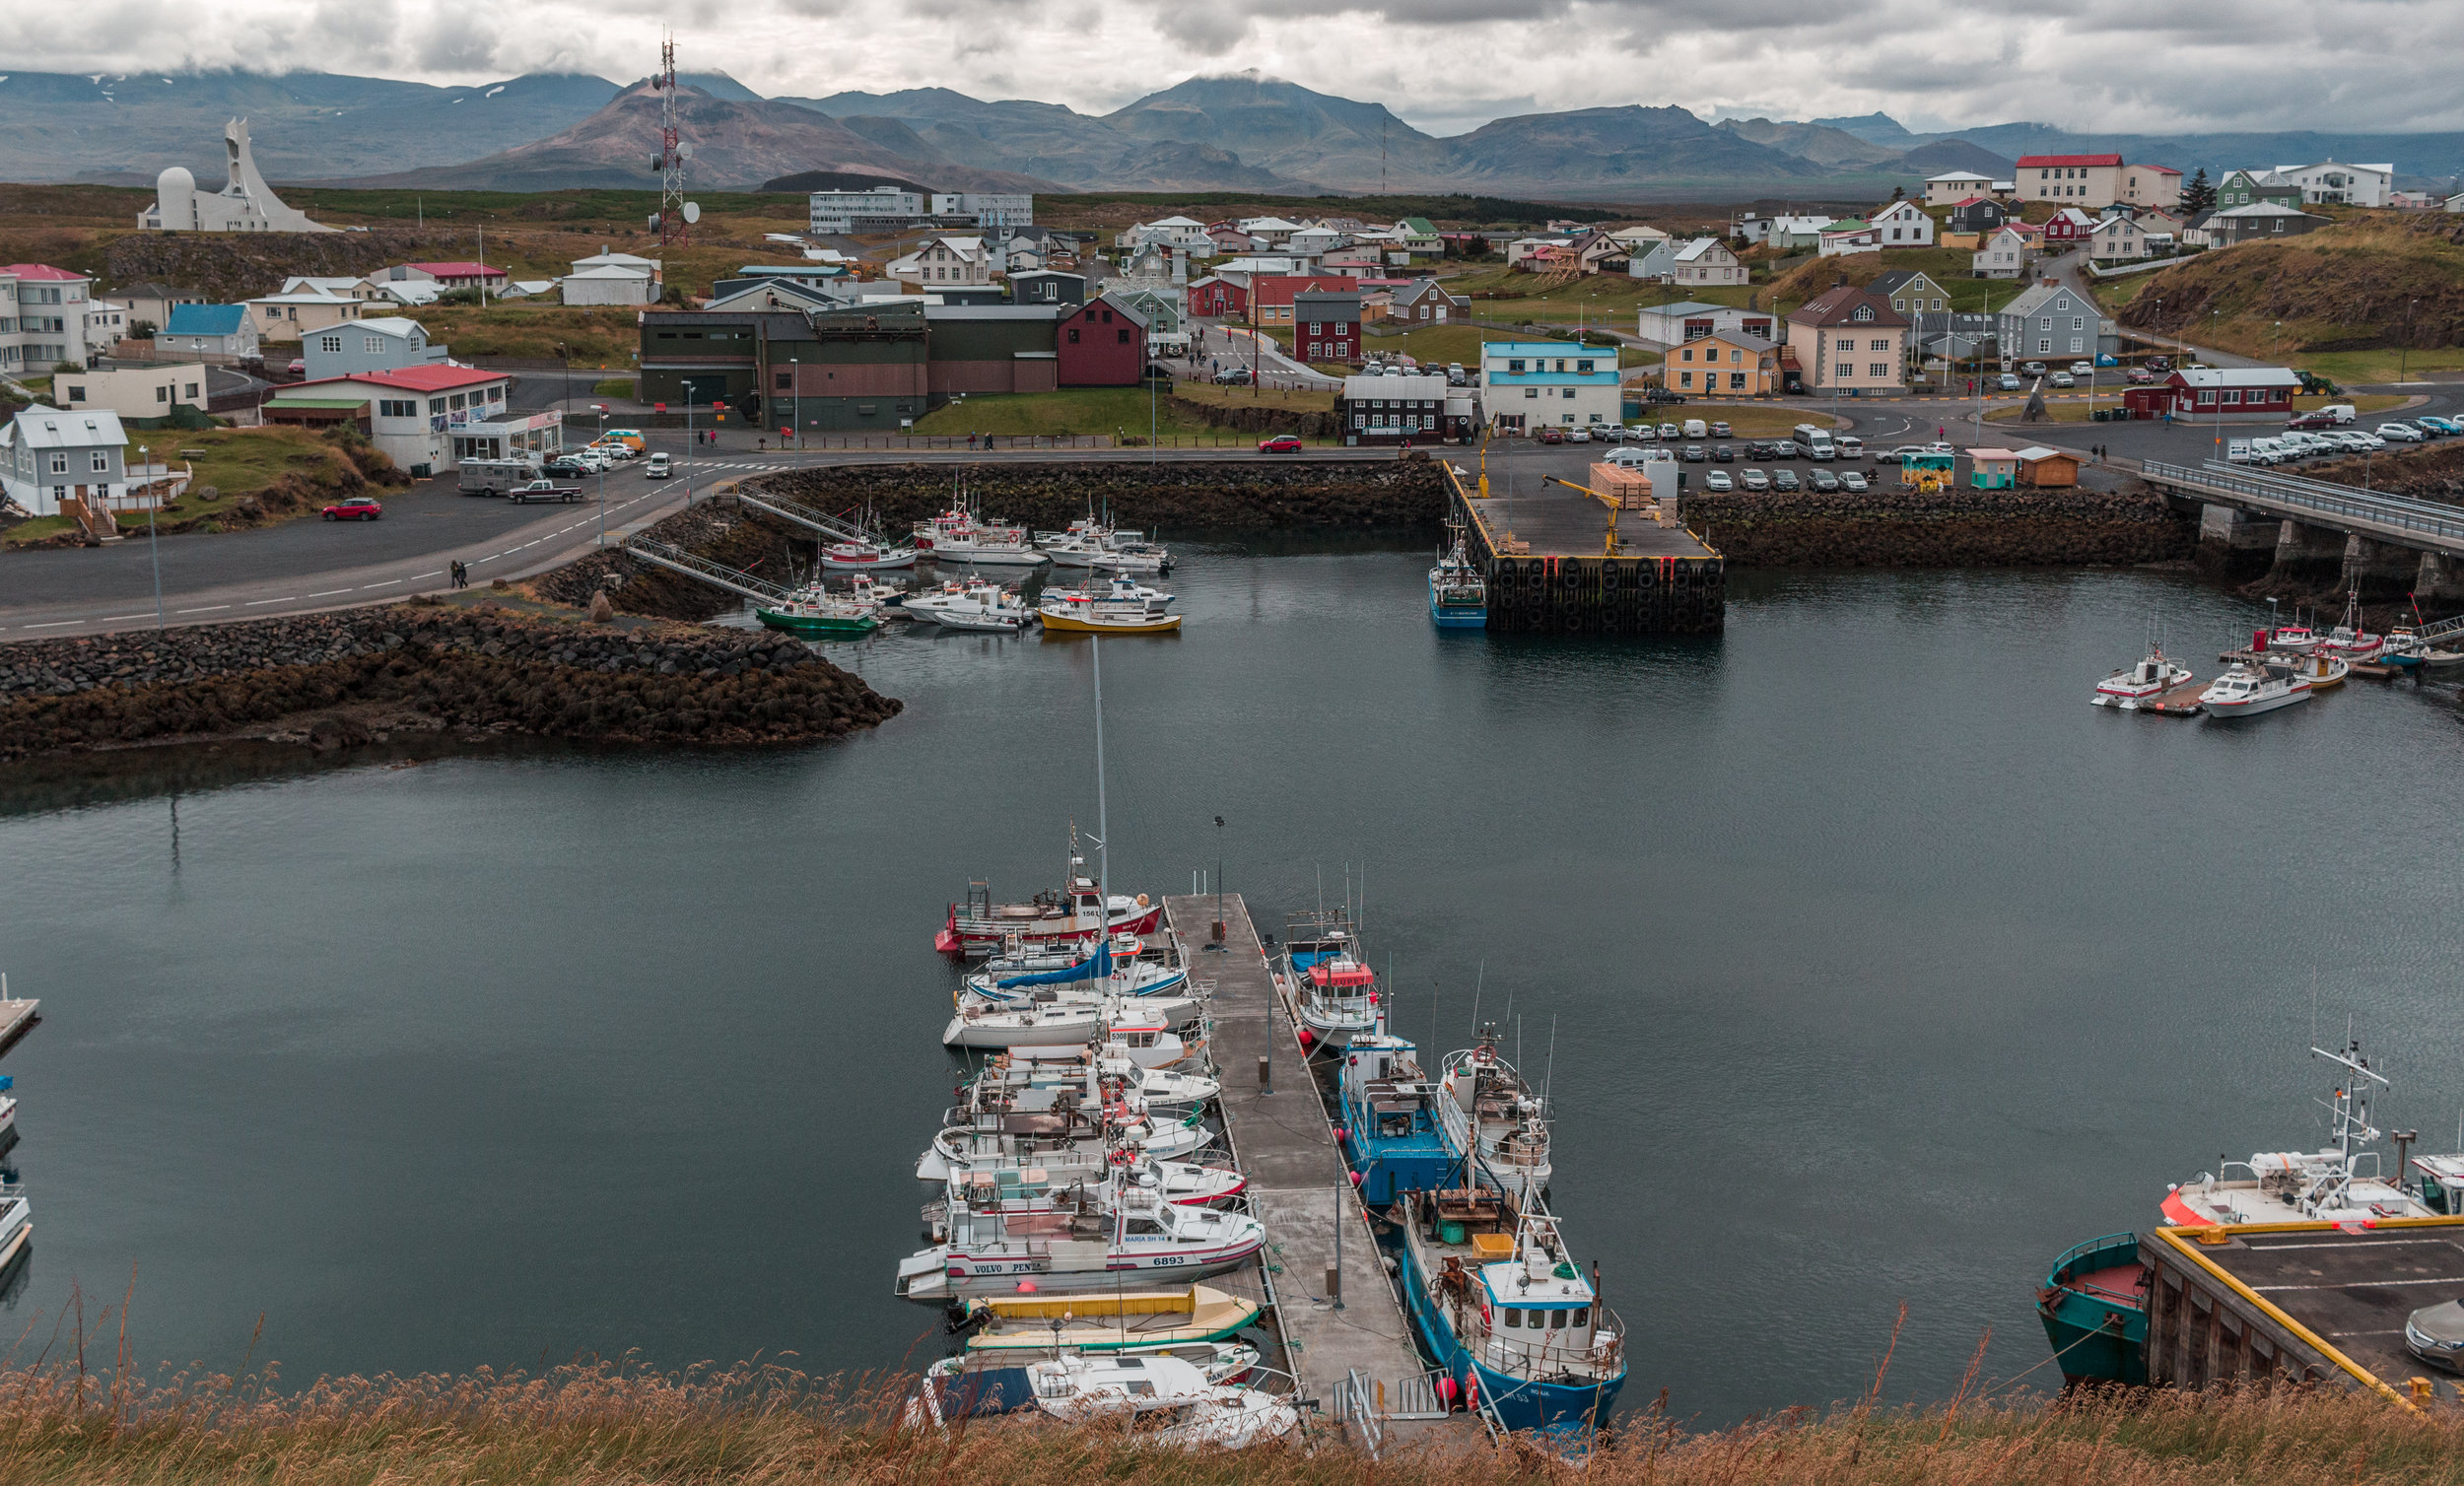 Stykkishólmur - a small fishing town